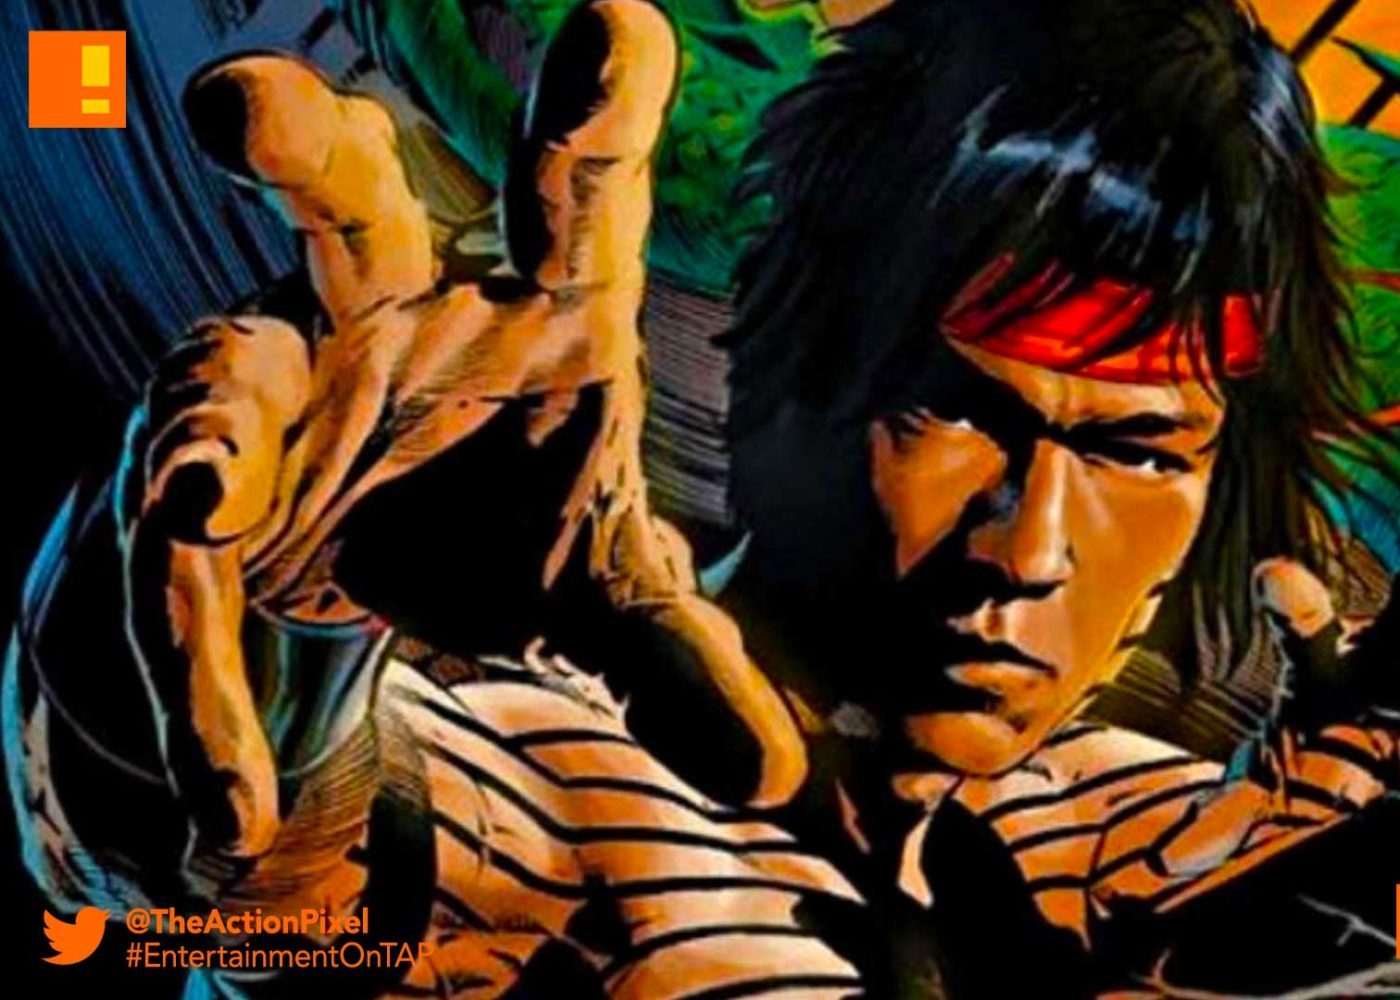 shang-chi, marvel comics, marvel, first asian superhero, movie, the action pixel, entertainment on tap,kung-fu,master of kung-fu, martial arts,